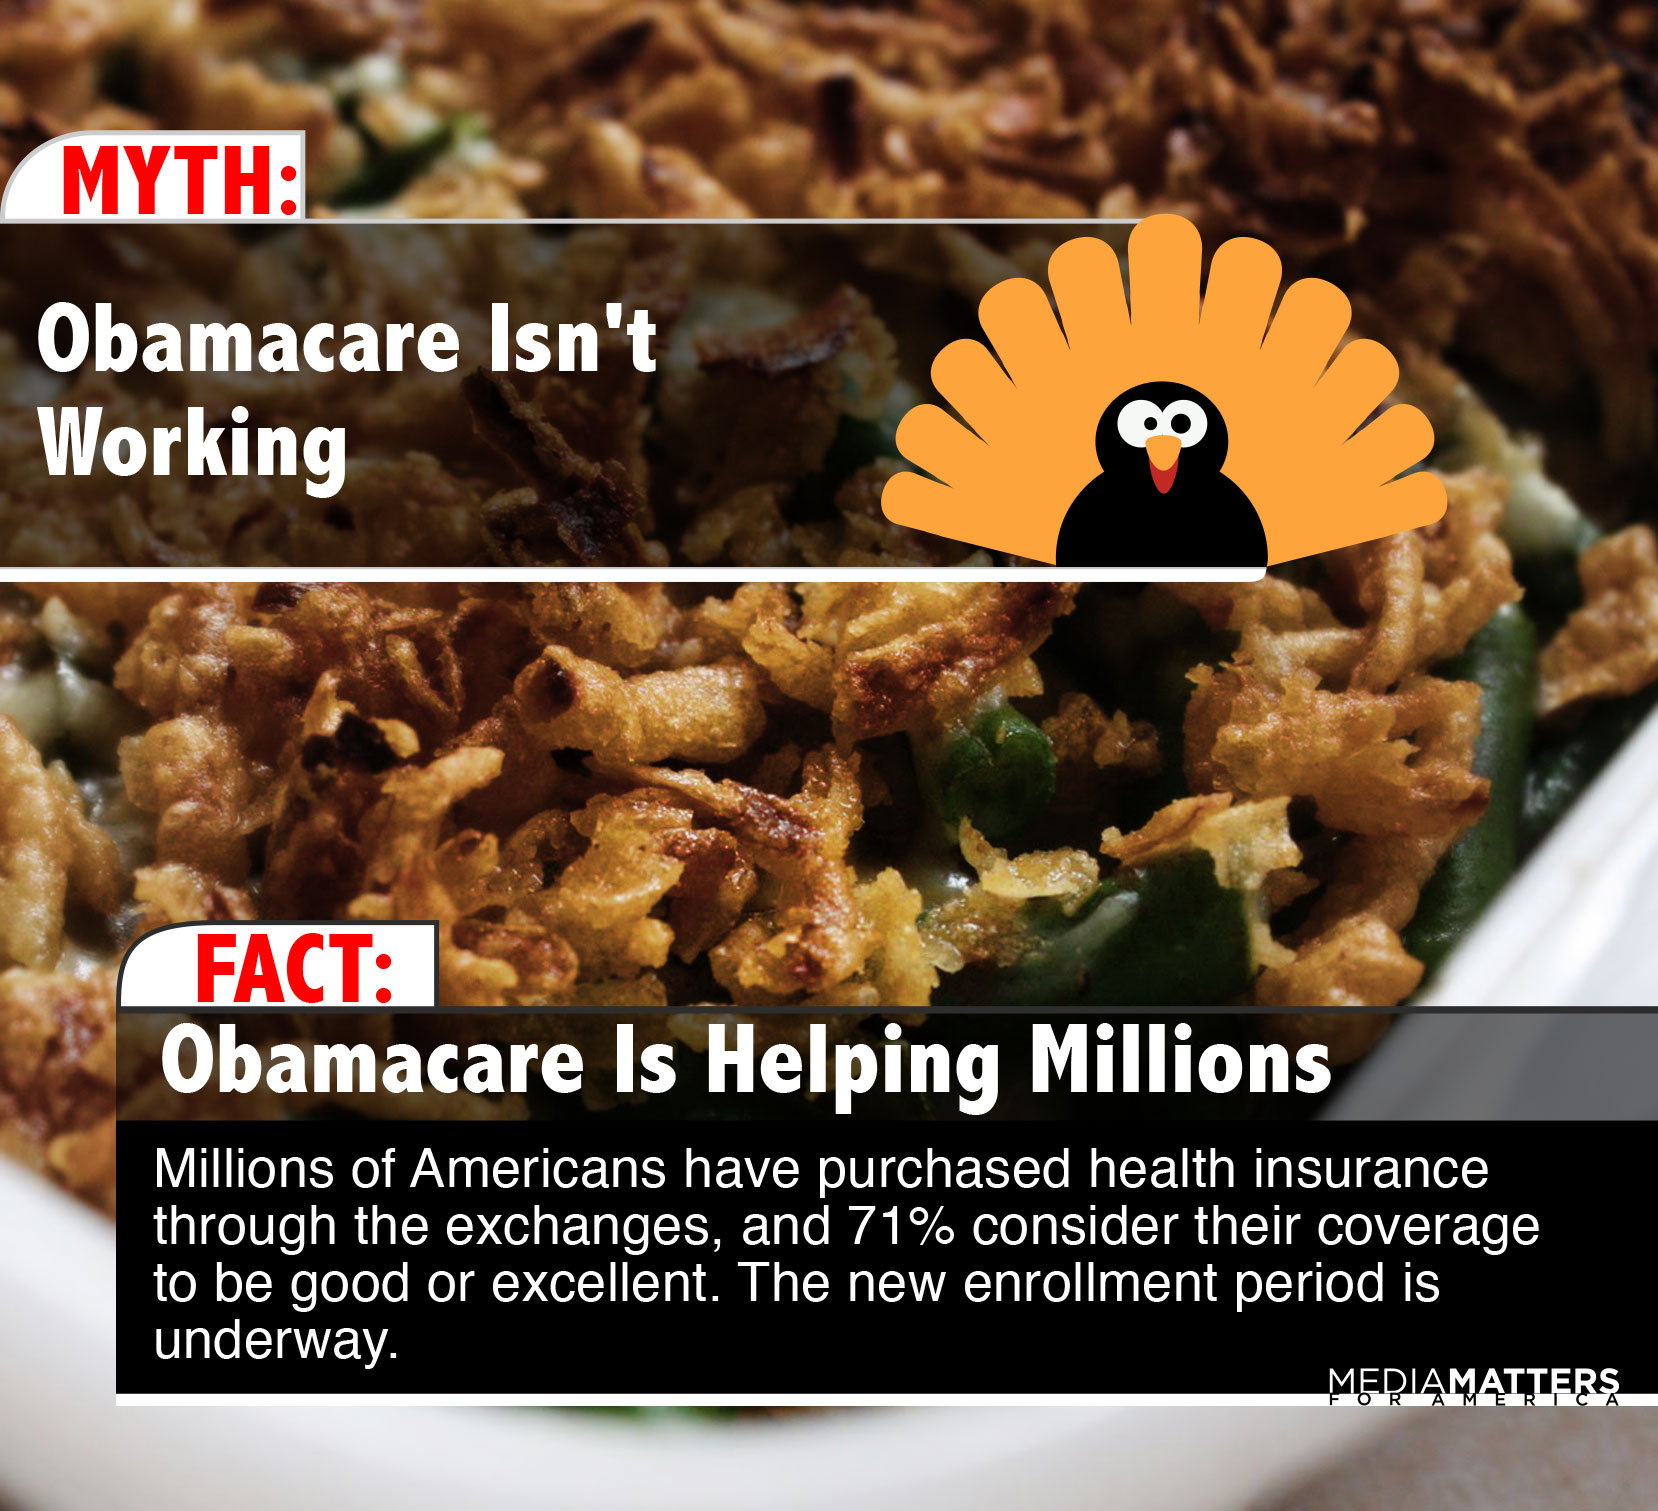 Obamacare Myths and Facts